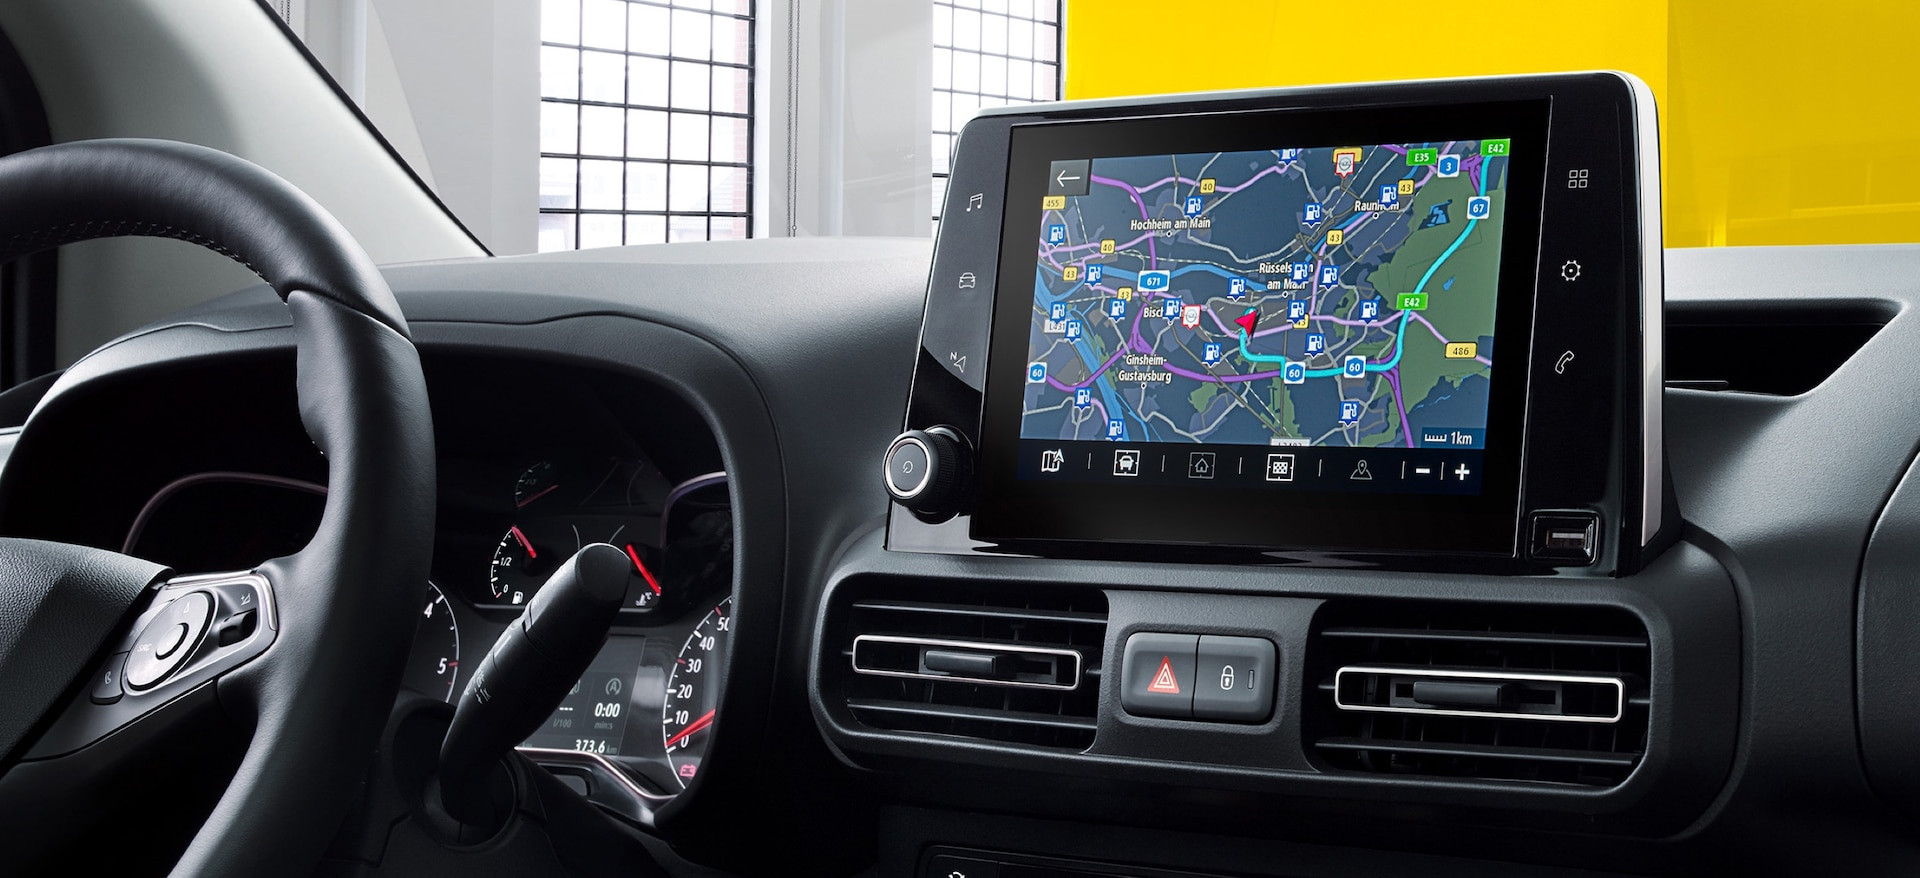 opel_combo_life_navigation_touchscreen_2